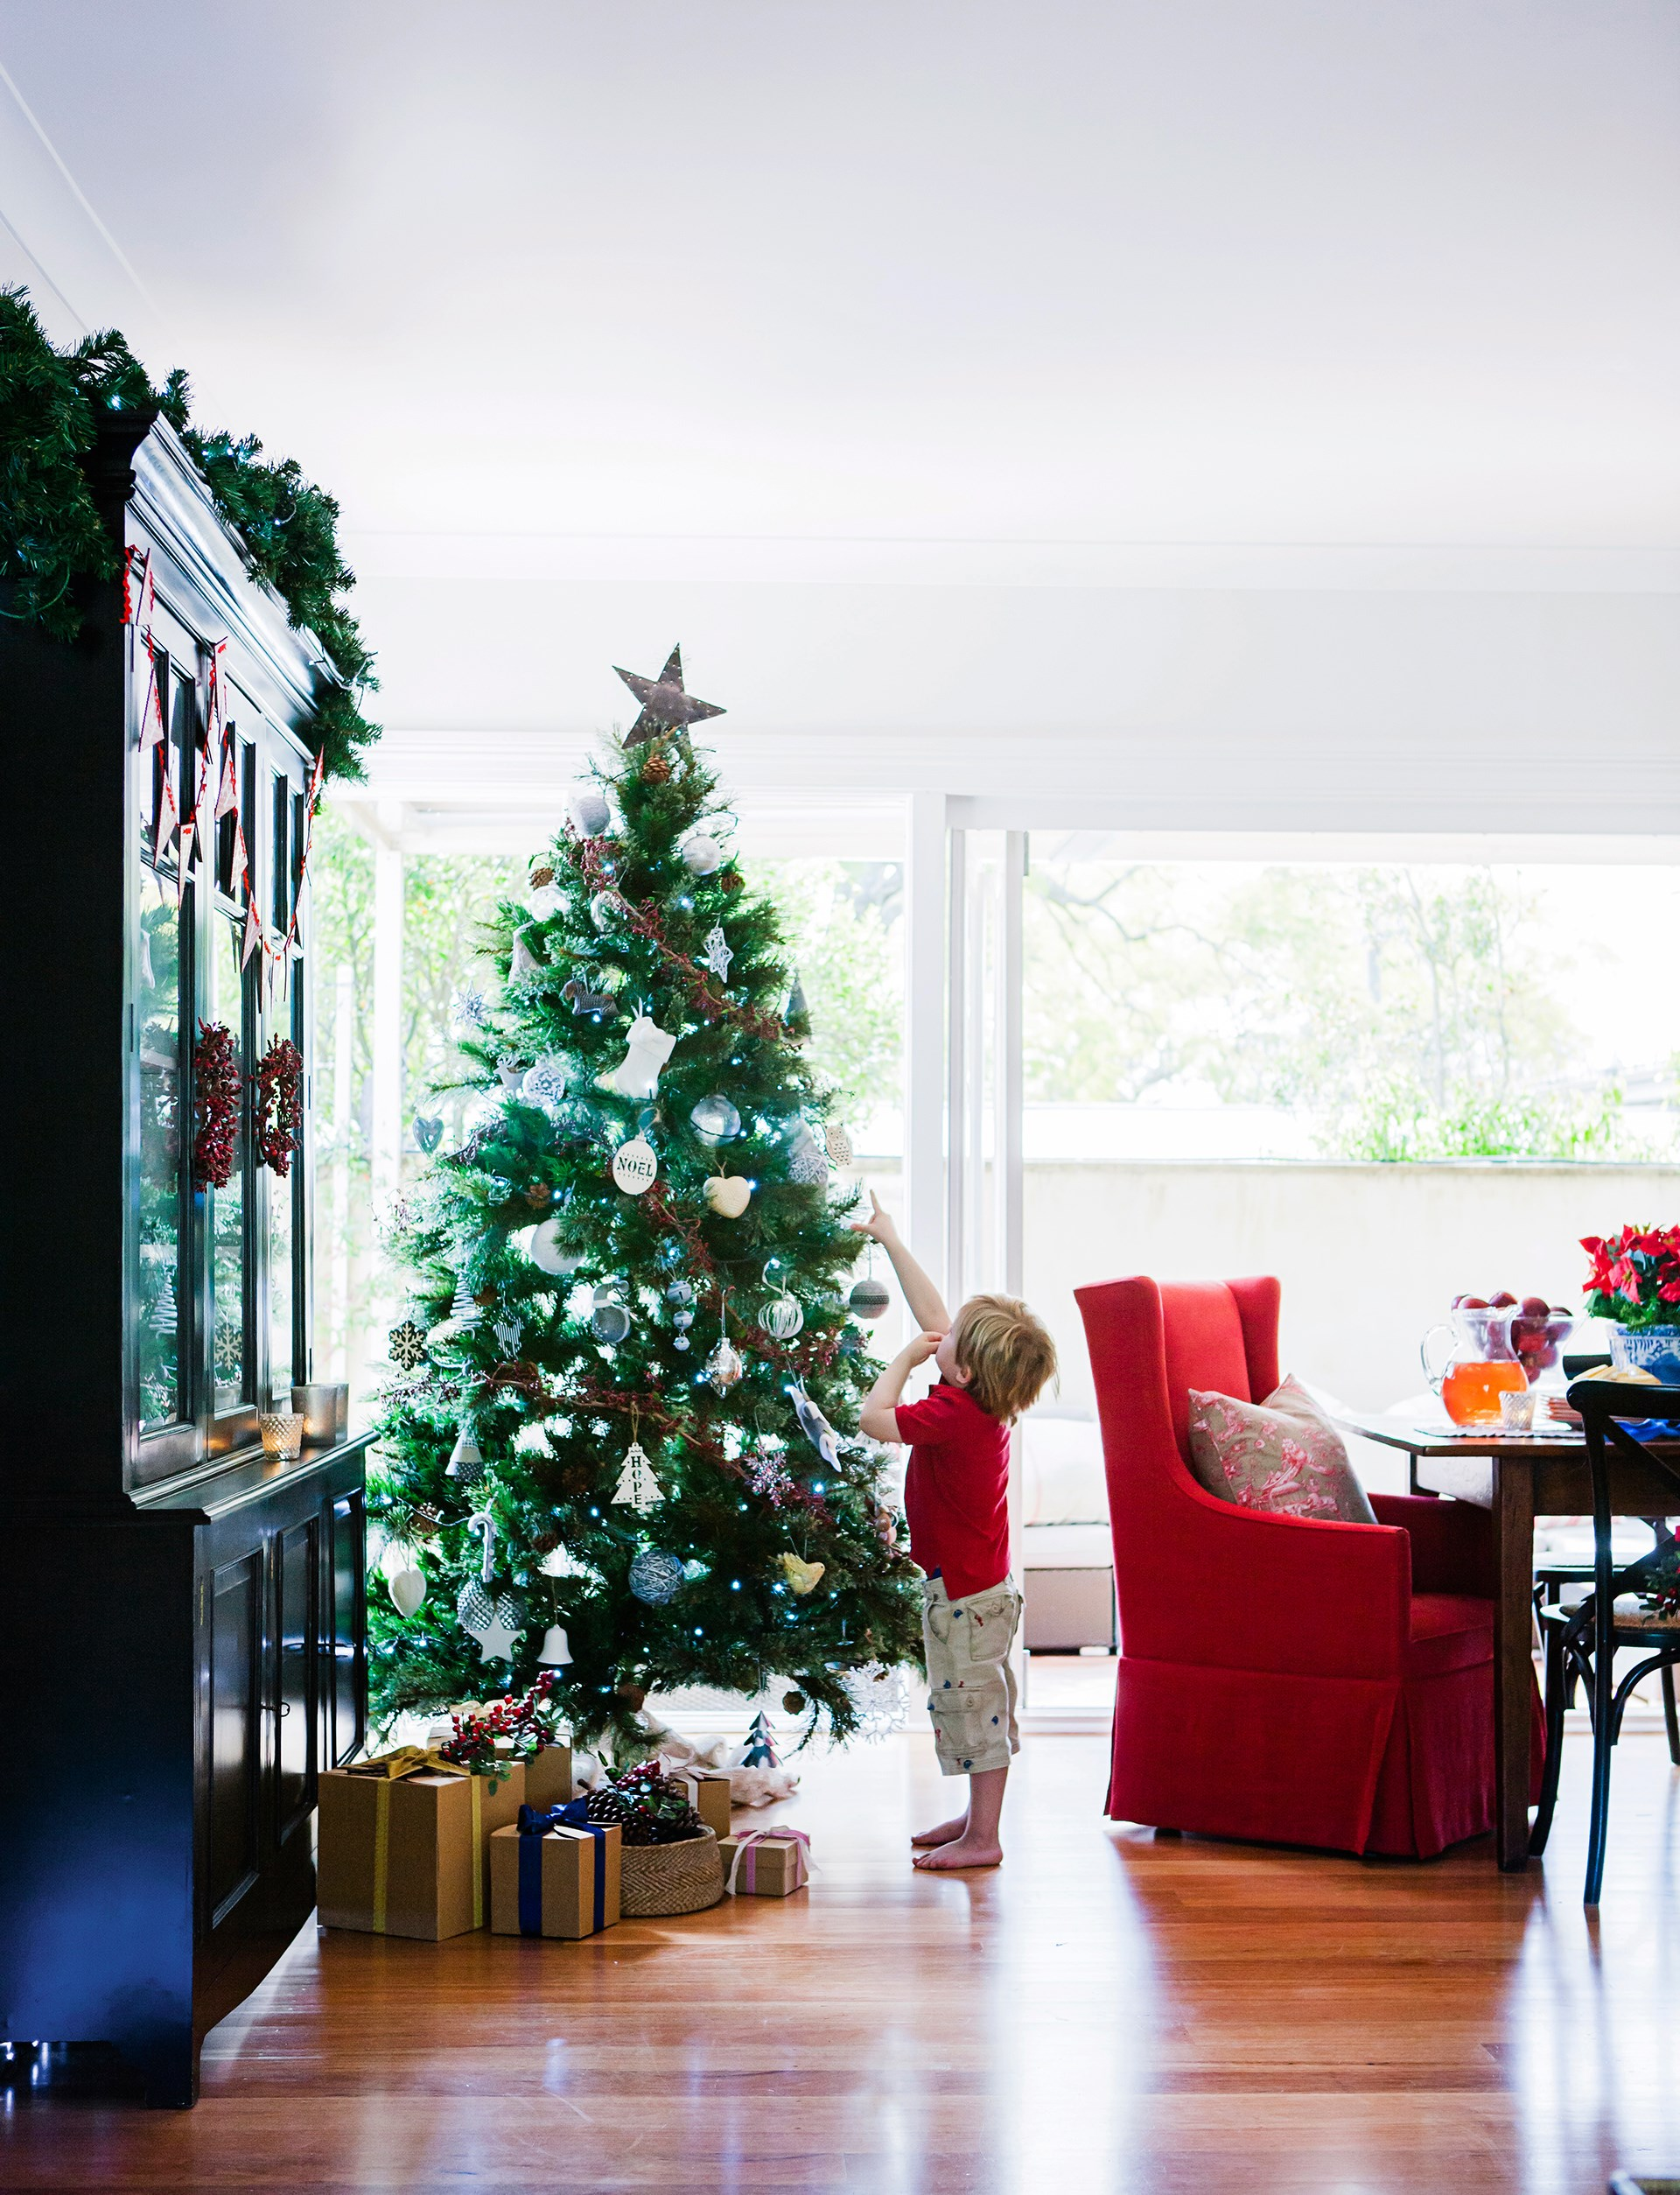 """Old and new traditions combine when this expat Dutch family rings in the season at their [historic sandstone bungalow in Sydney](http://www.homestolove.com.au/festive-family-home-decorating-ideas-3965